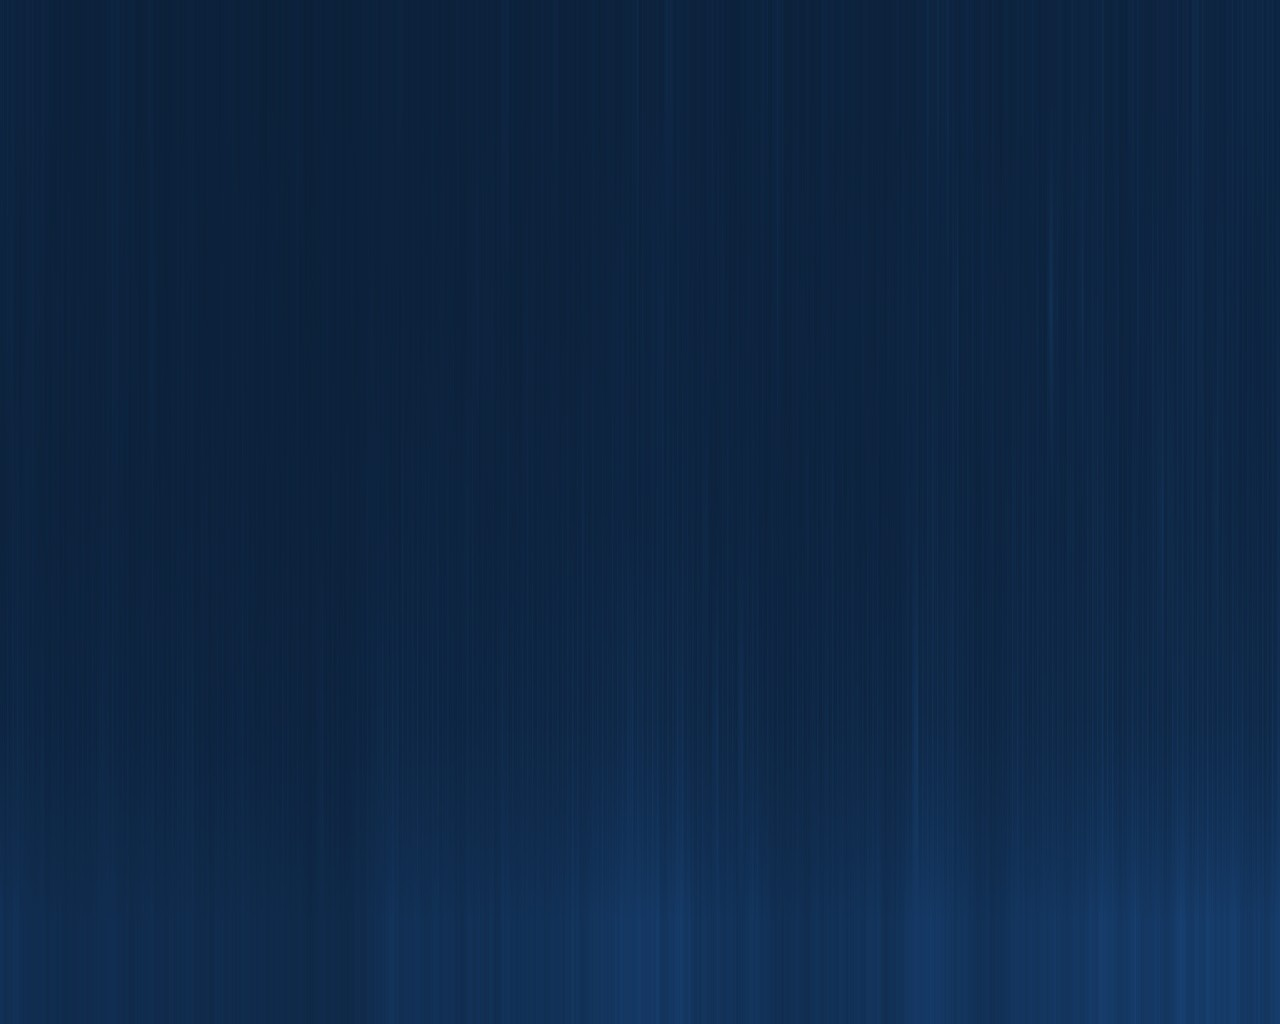 brushed wallpaper blue by 10r